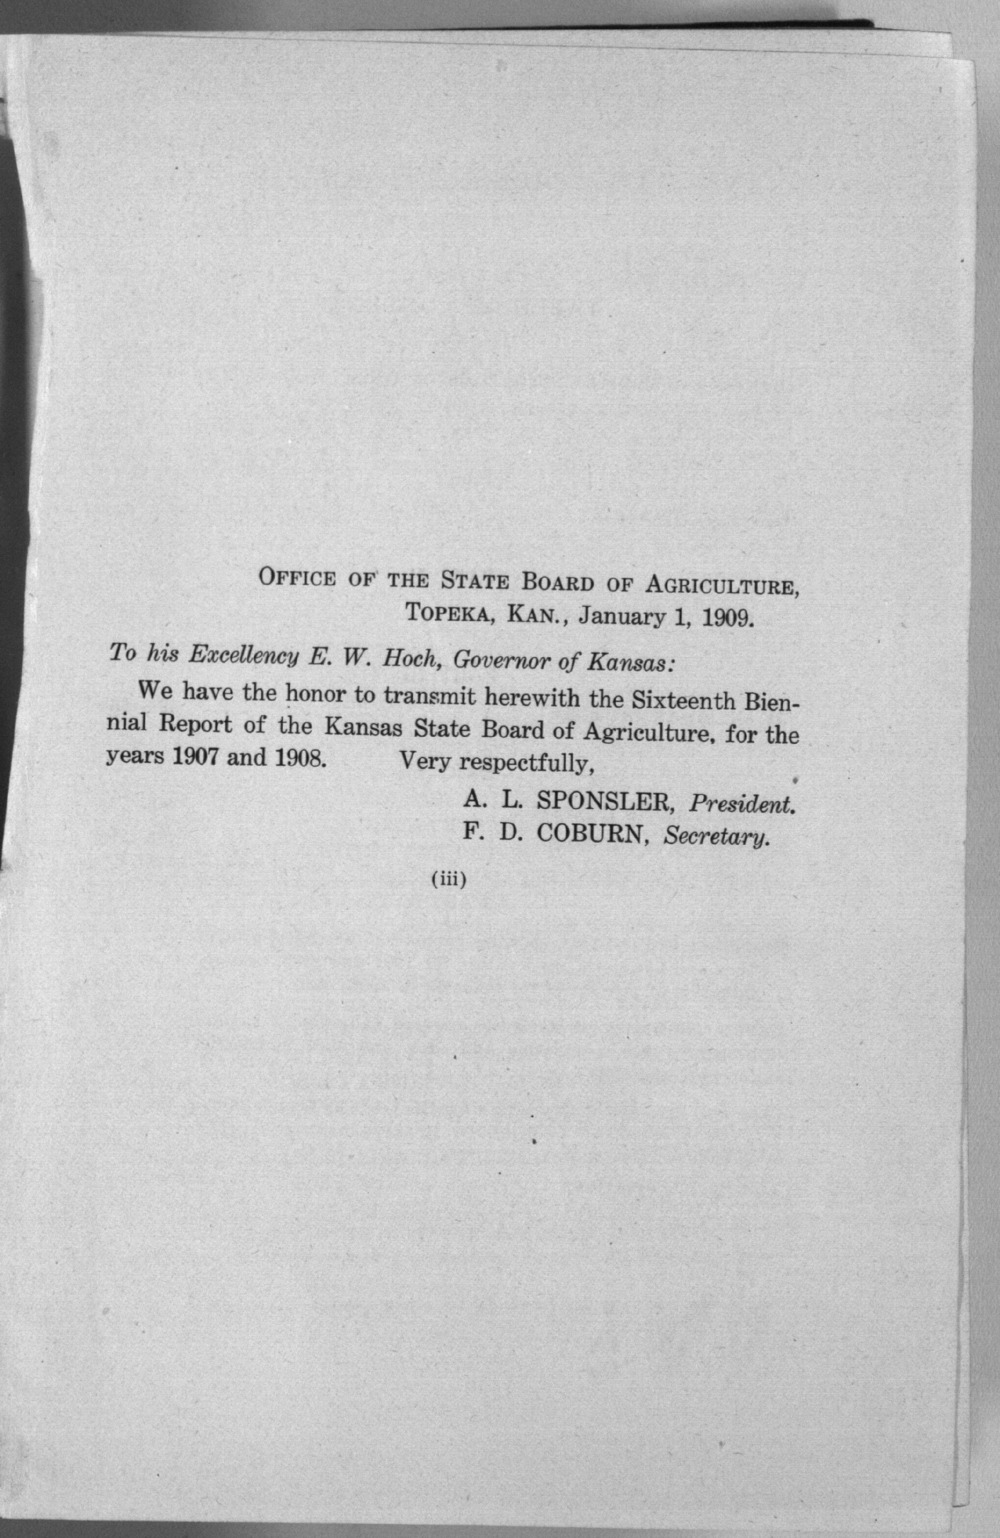 Sixteenth biennial report of the Kansas State Board of Agriculture, 1907-1908 - Letter of Transmittal